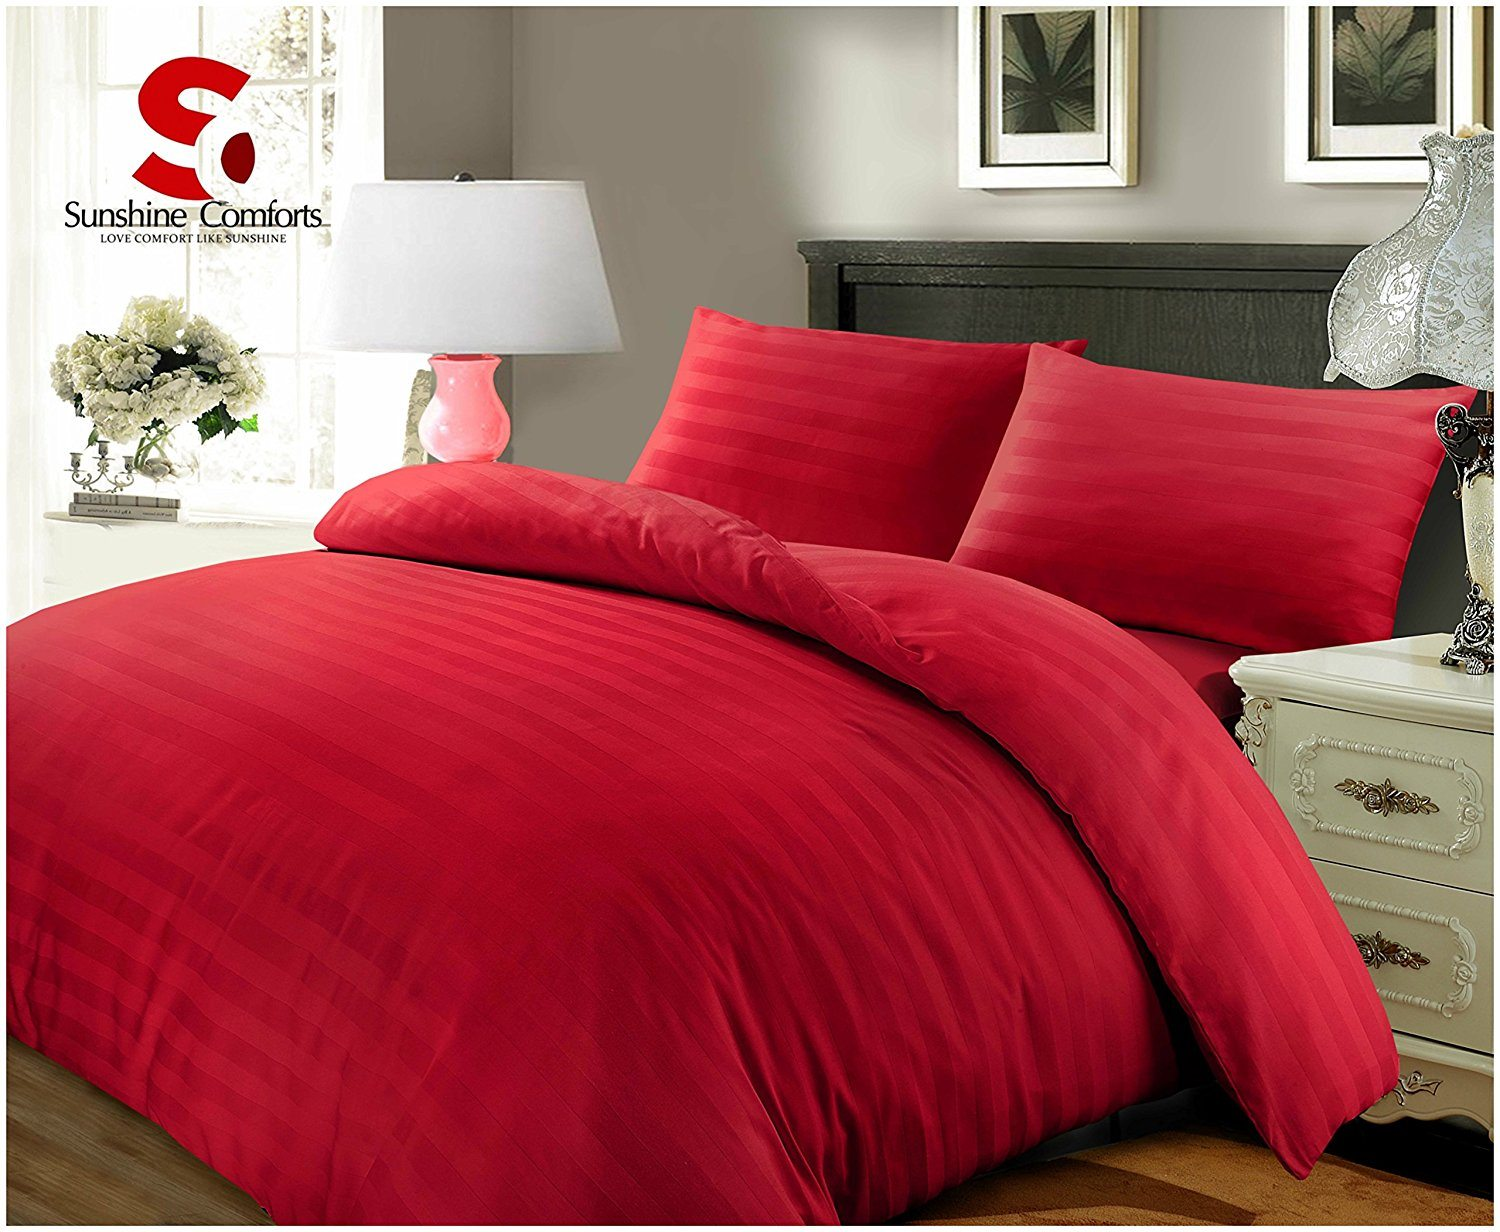 SUNSHINE COMFORTS ® 100% LUXURY HOTEL QUALITY EGYPTIAN COTTON SATIN STRIPE DUVET COVER SET